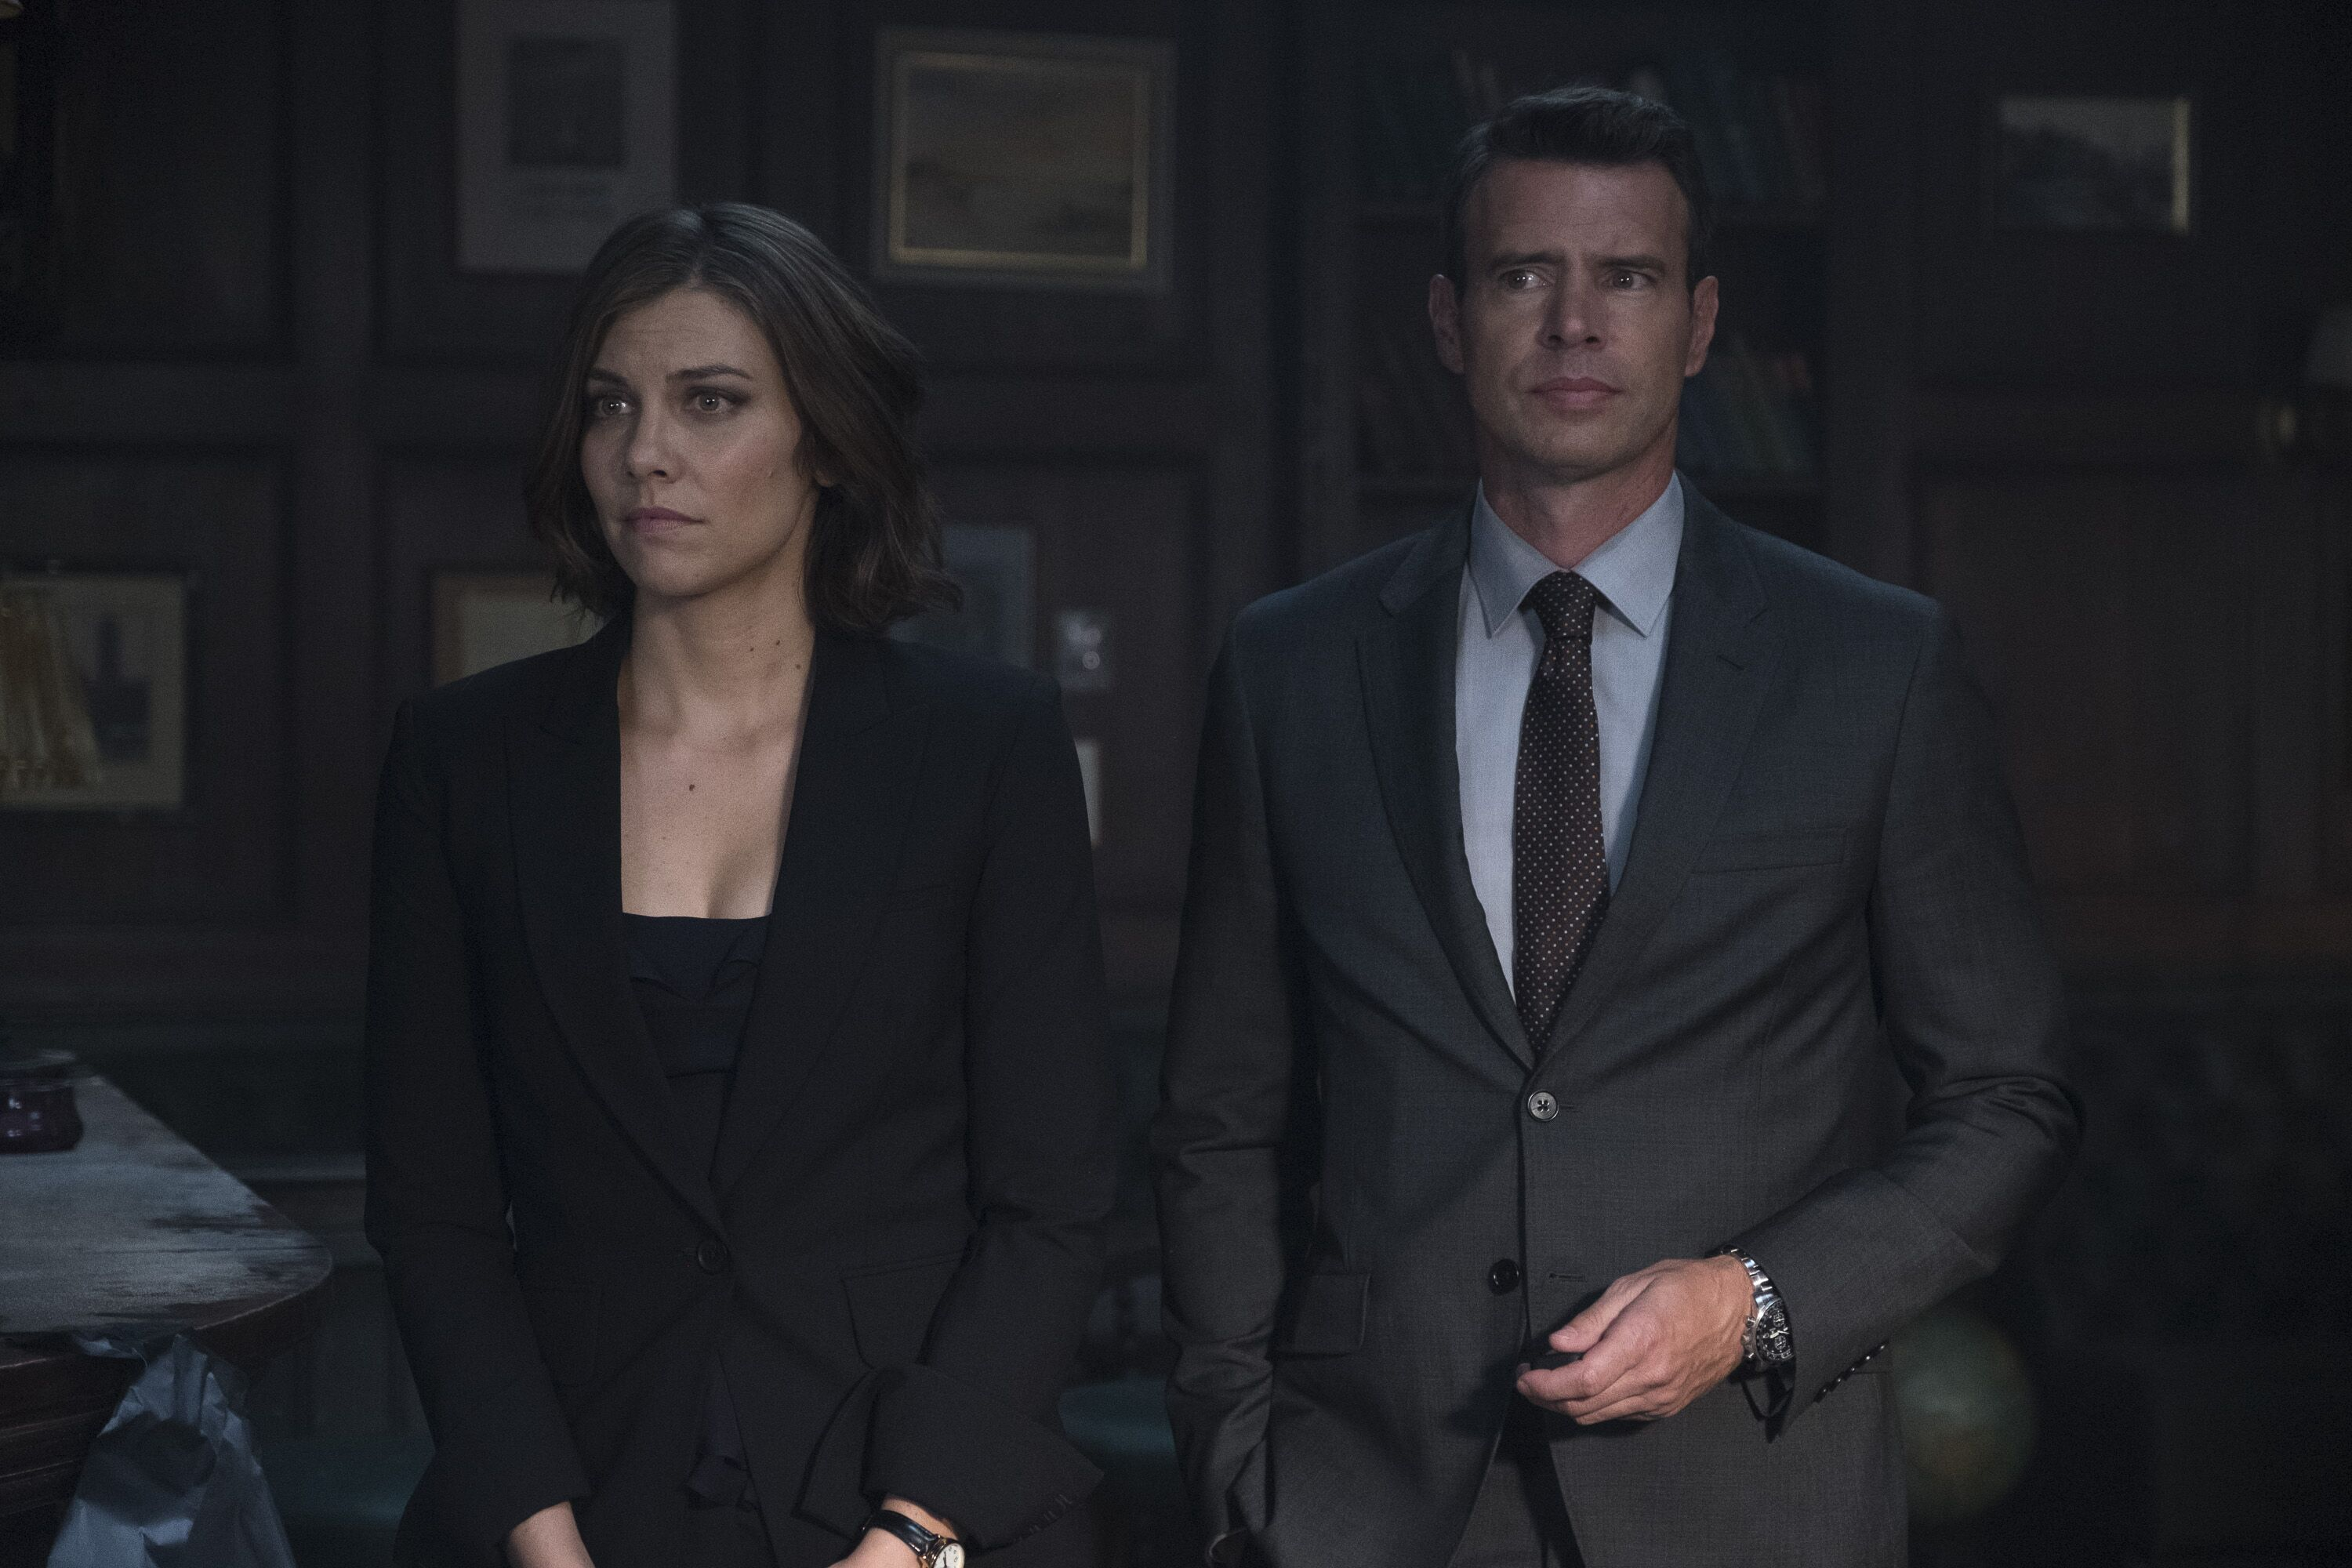 Will ABC's Whiskey Cavalier get canceled?